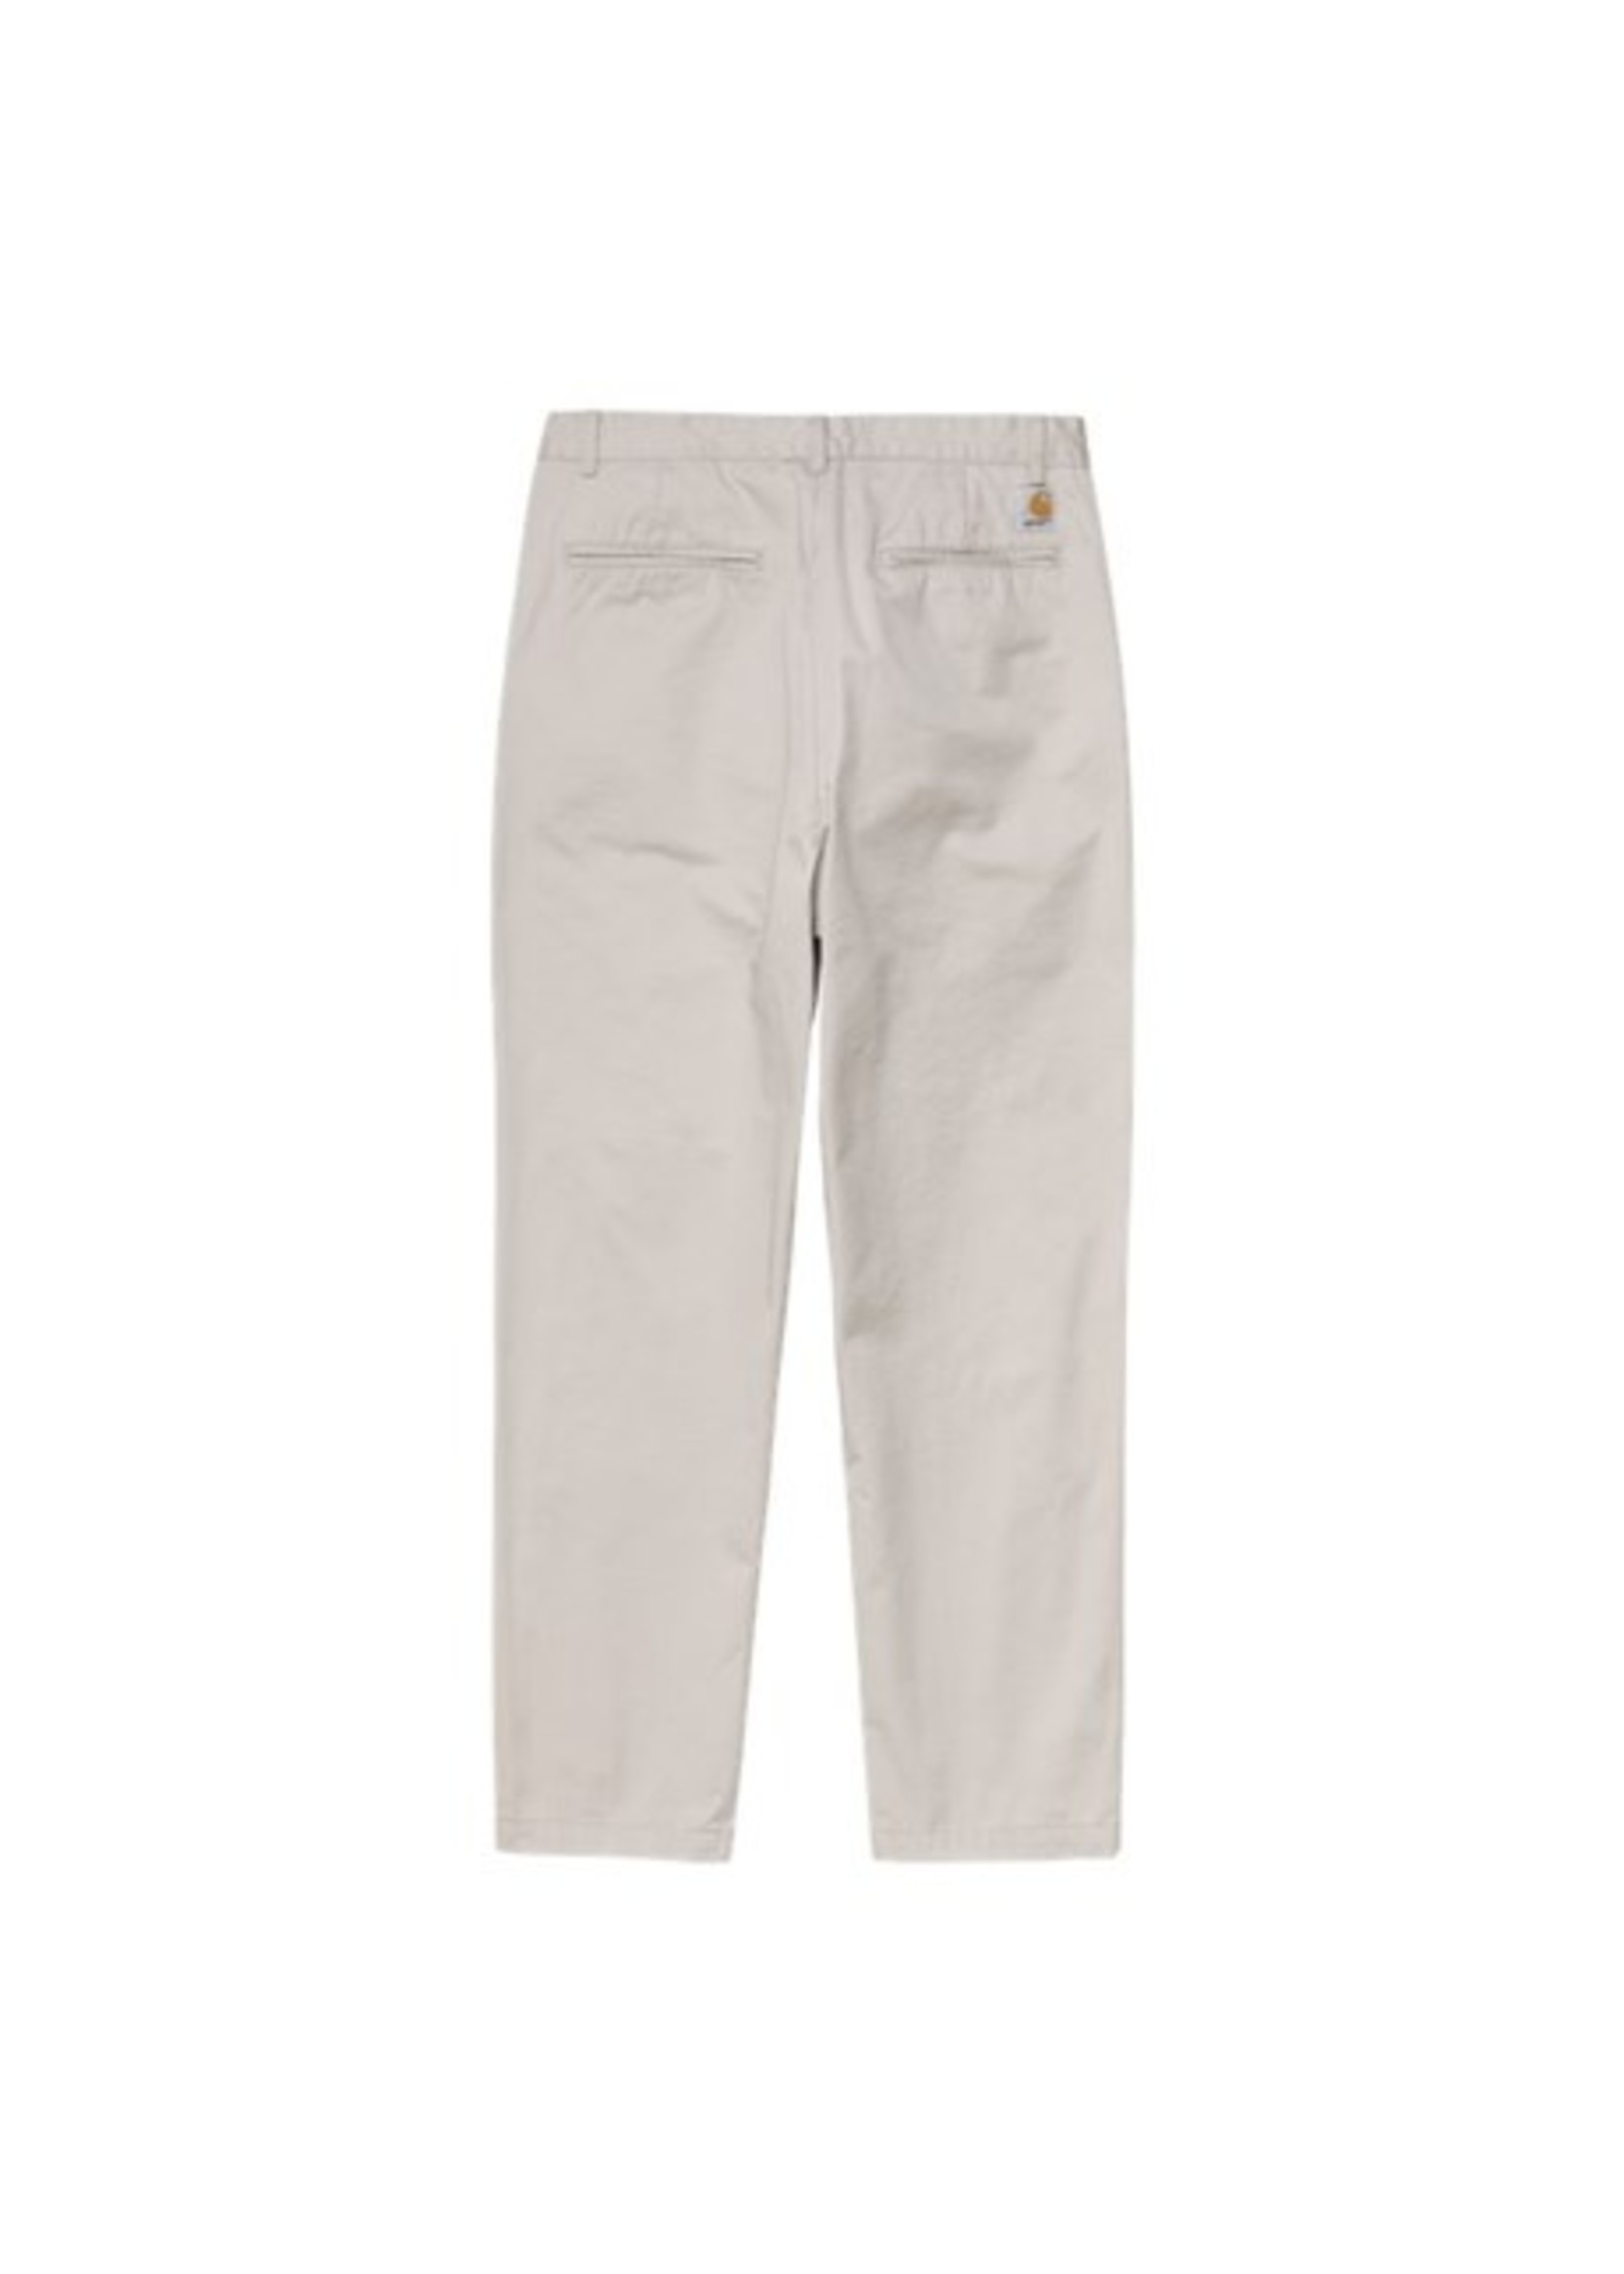 Carhartt Work In Progress Carhartt WIP Alder pant in Glaze